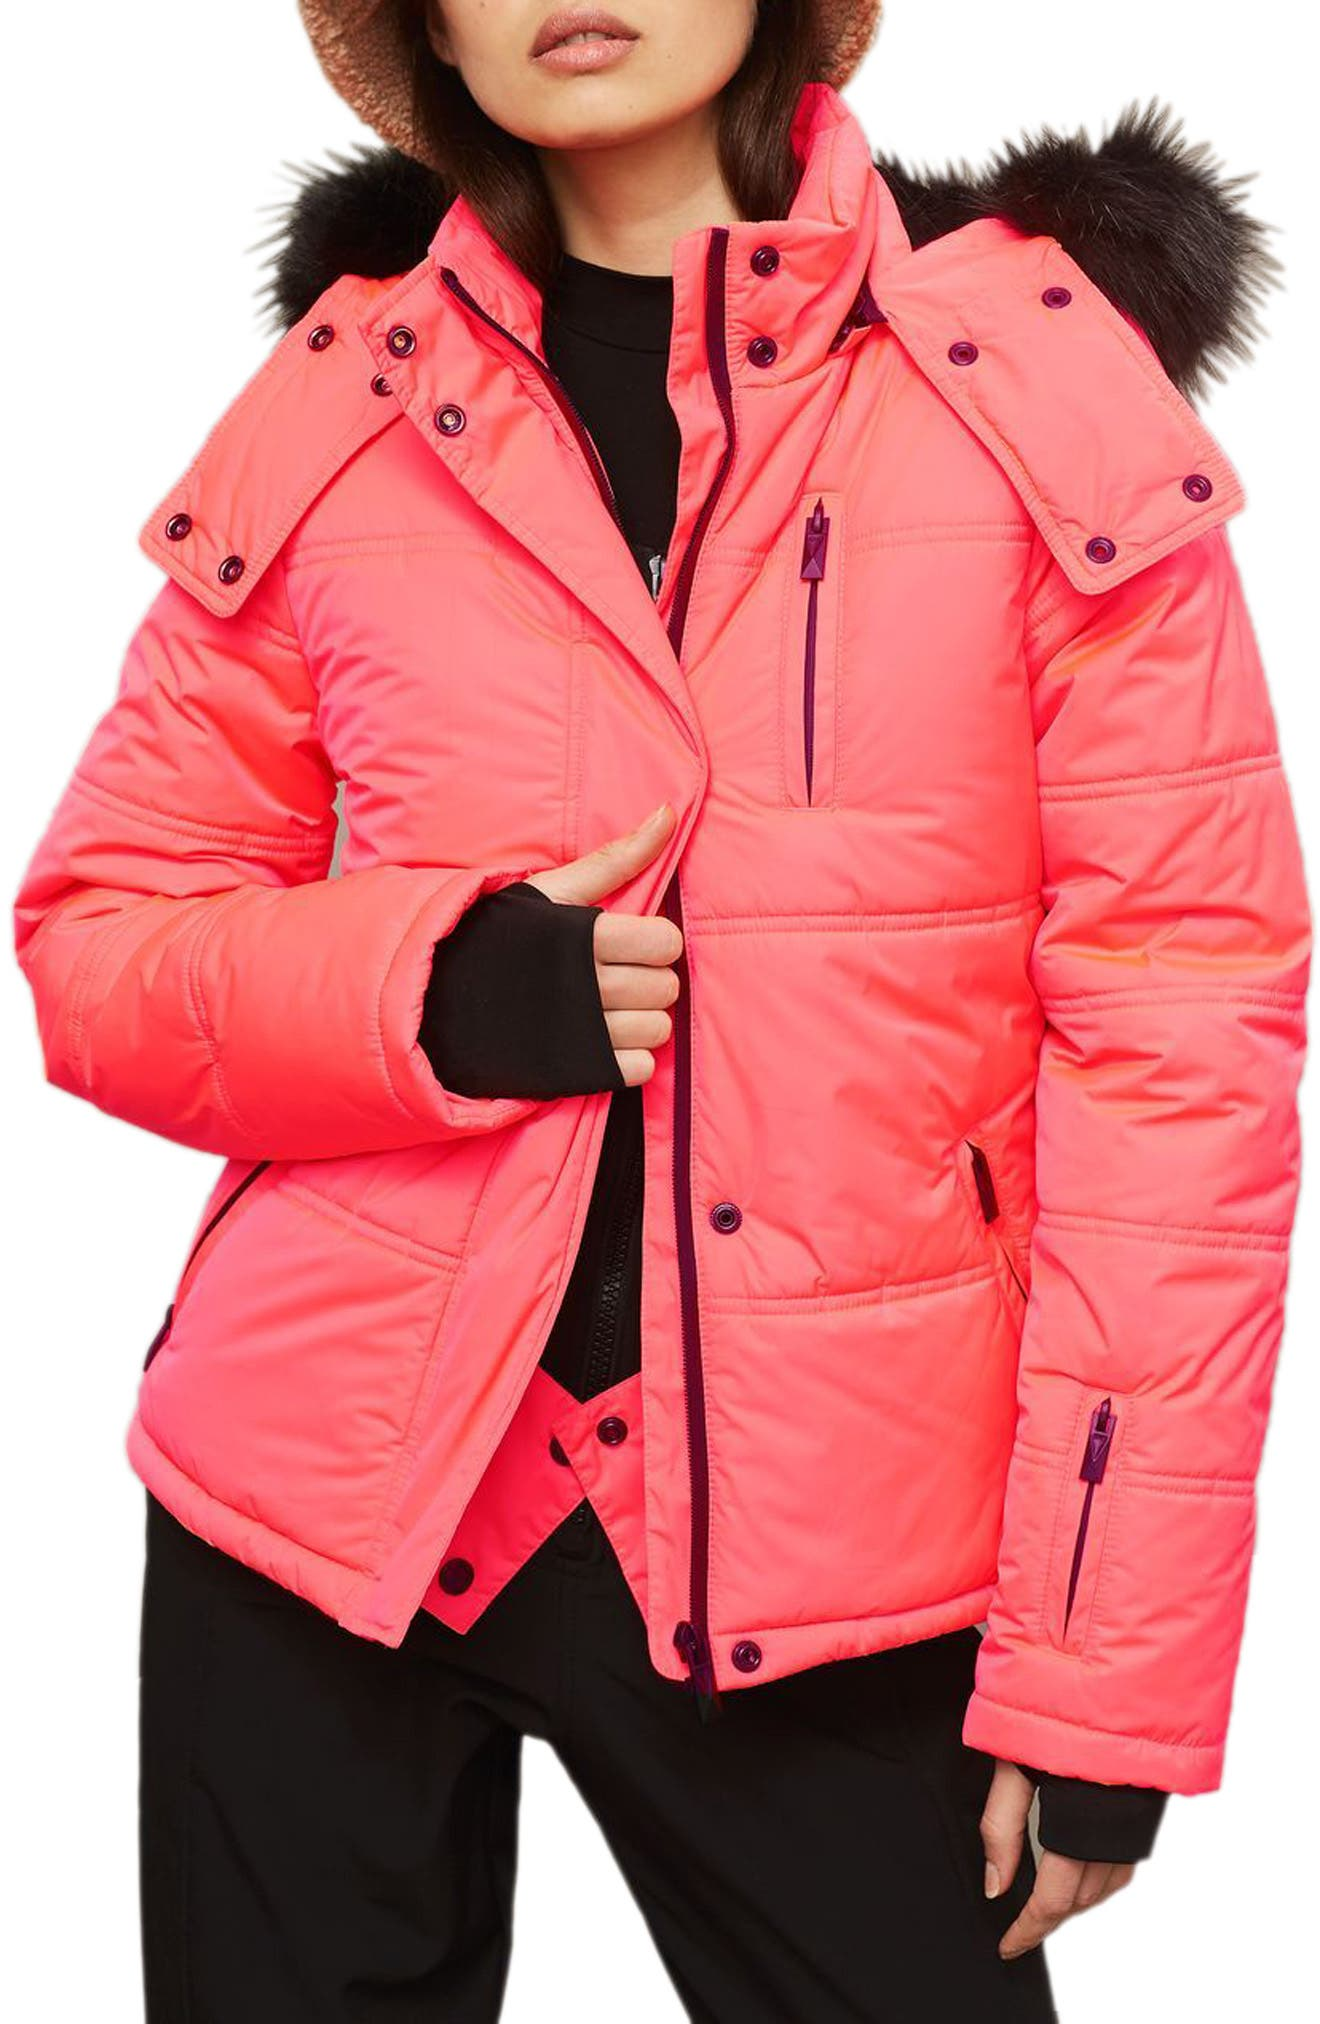 SNO Rio Faux Fur Hood Neon Puffer Jacket,                         Main,                         color, Pink